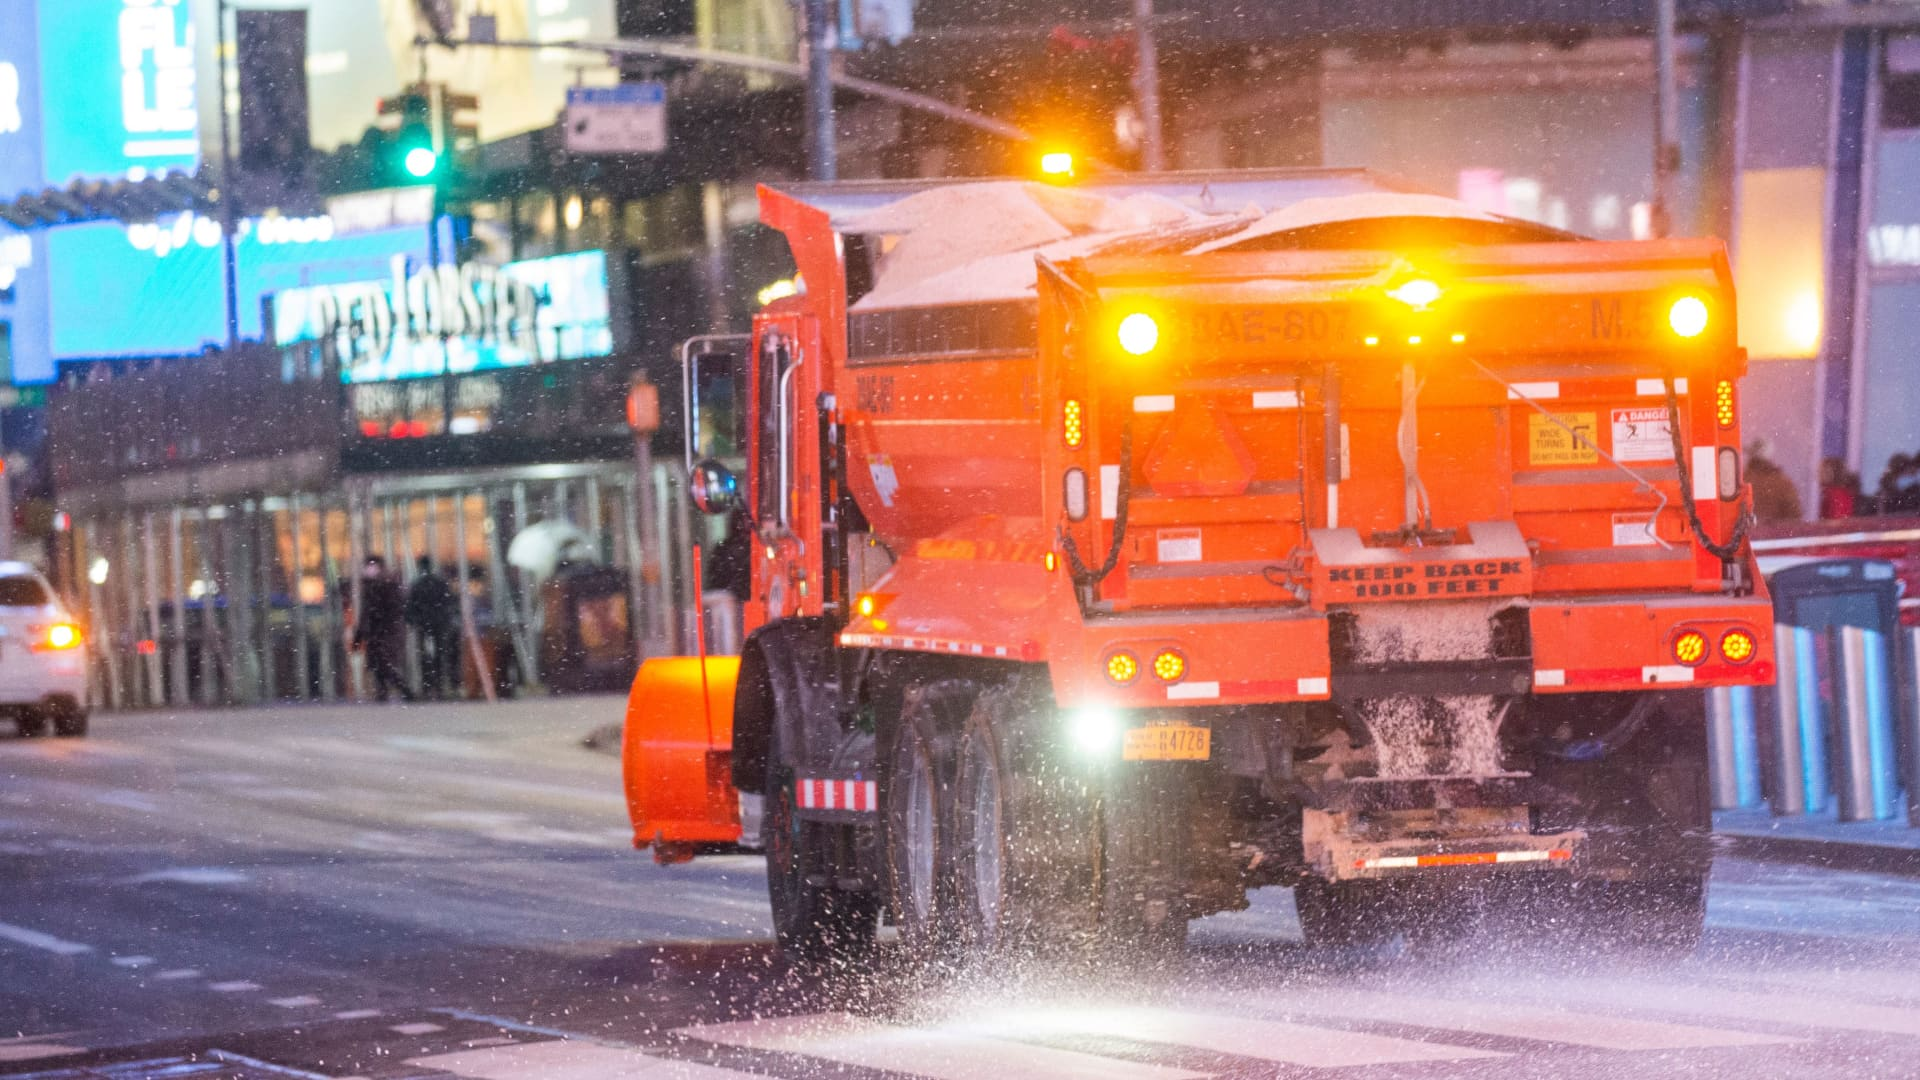 A truck spreads salt as snow falls during a winter storm in Times Square on January 31, 2021.